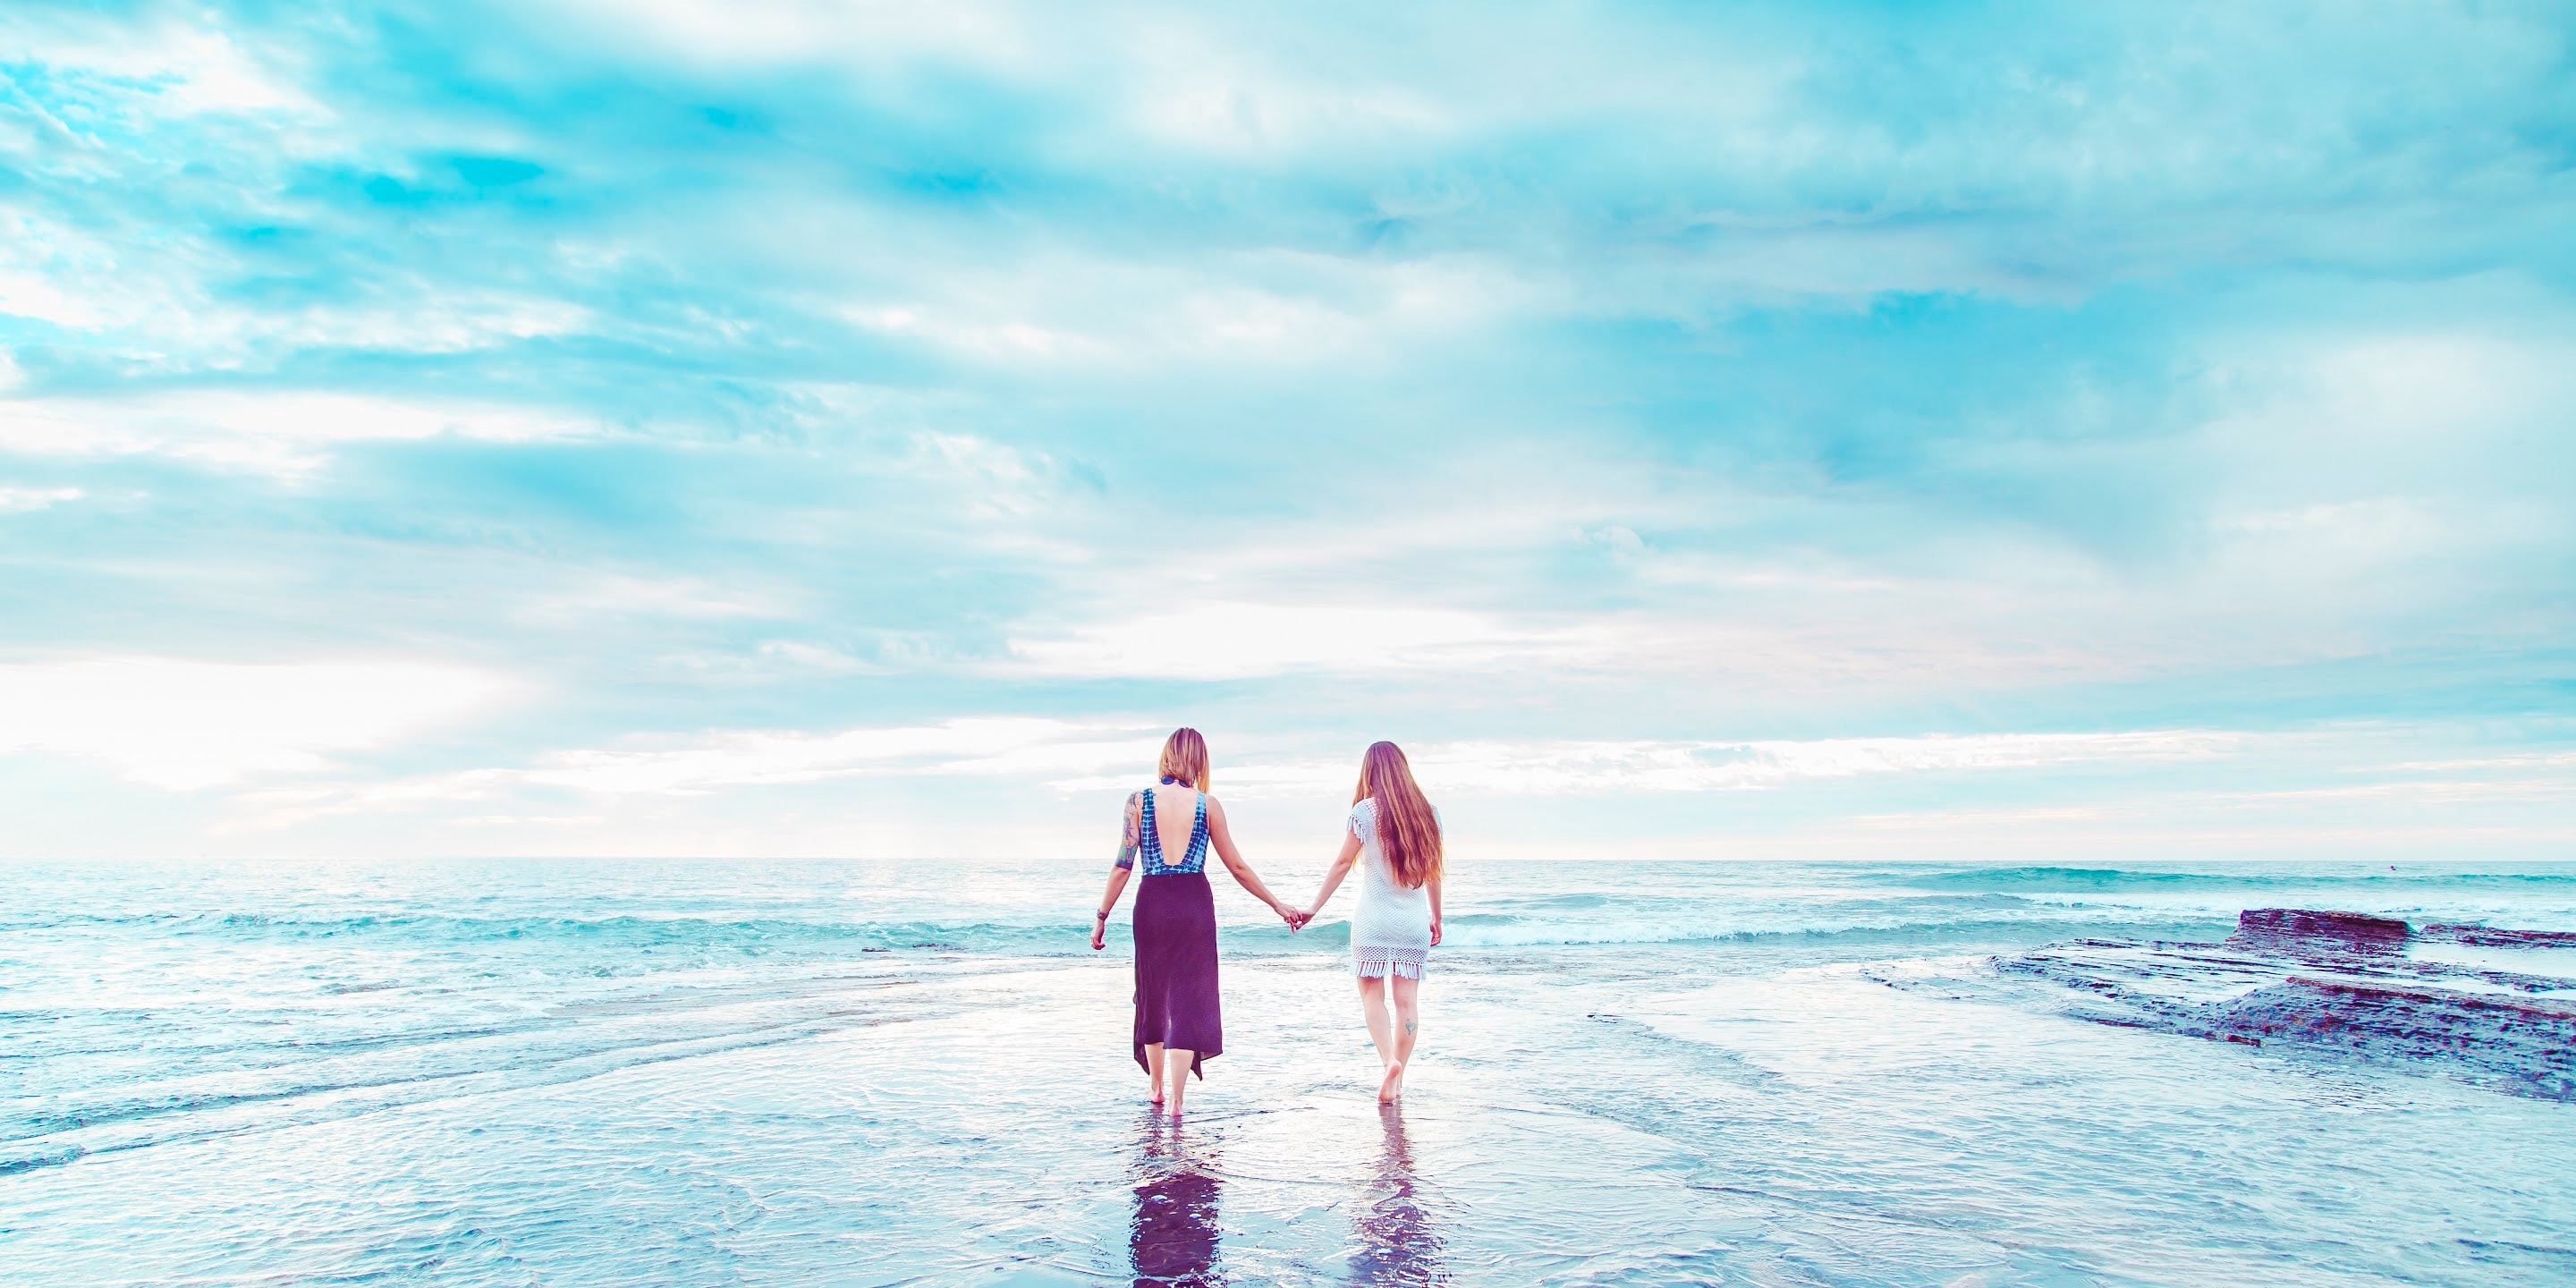 Two people holding hands walking in shallow ocean water underneath expansive blue sky